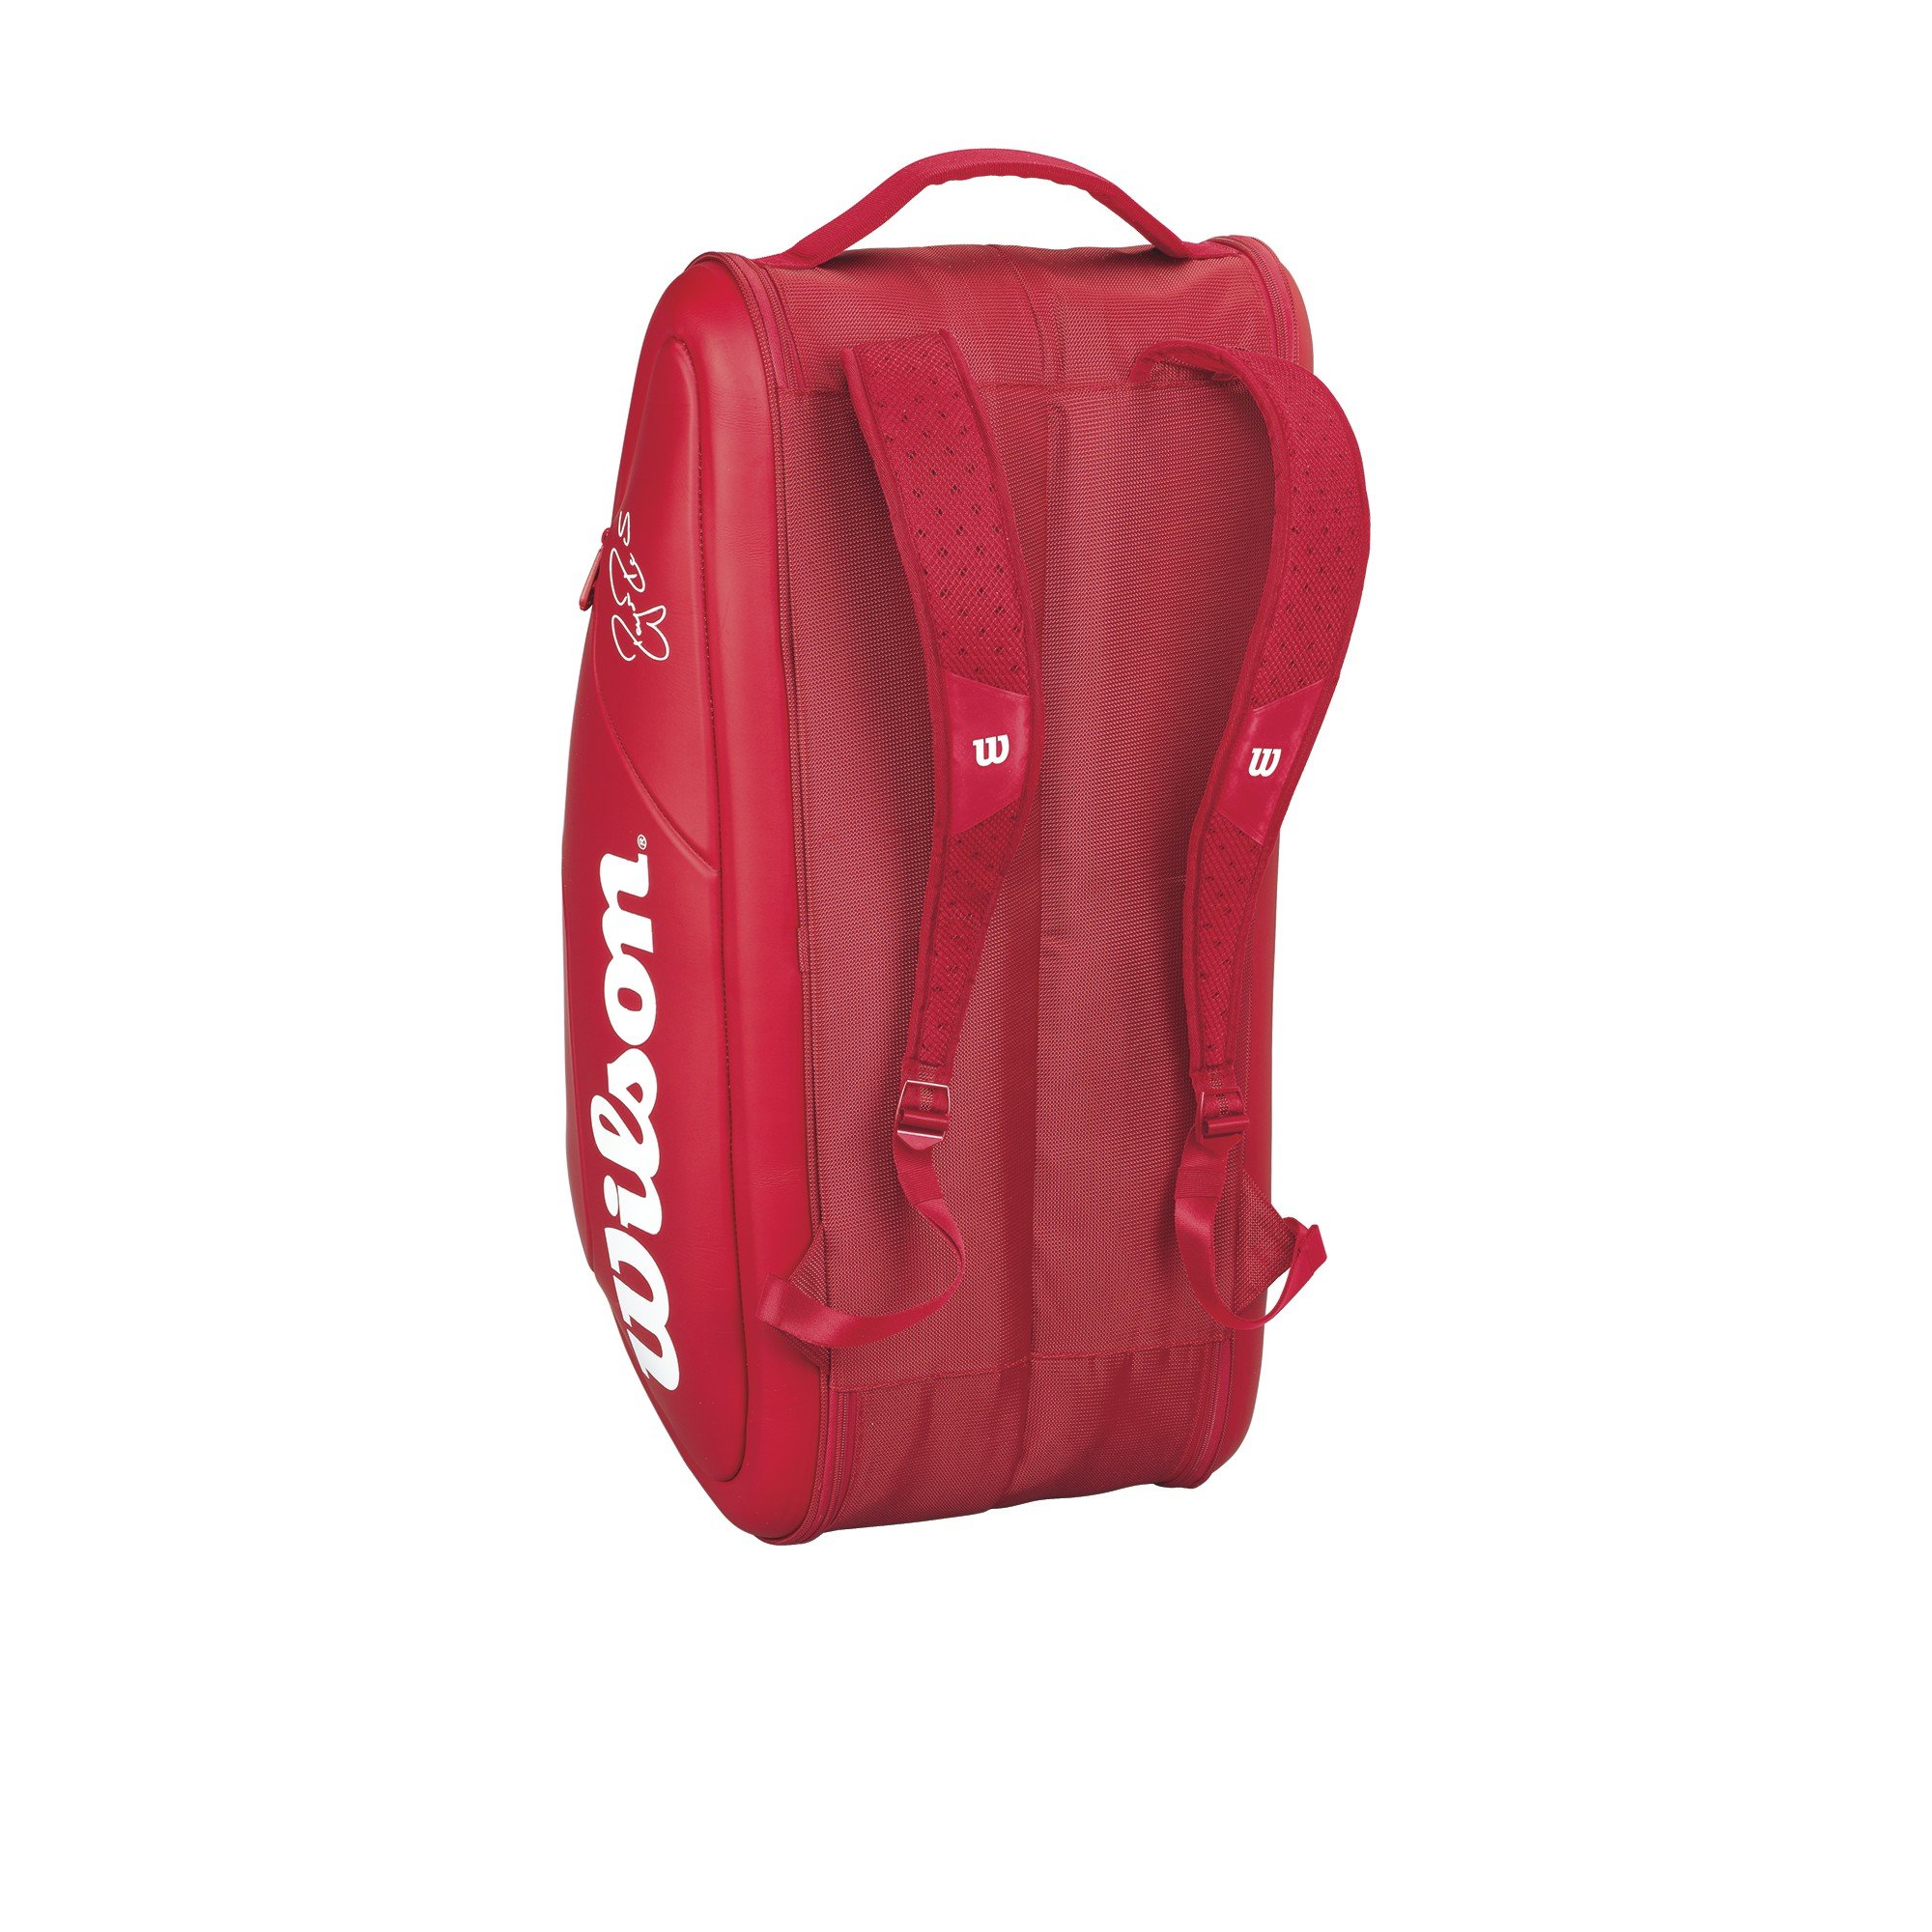 Wilson Federer DNA Collection Racket Bag (Holds up to 12), Red by Wilson (Image #3)